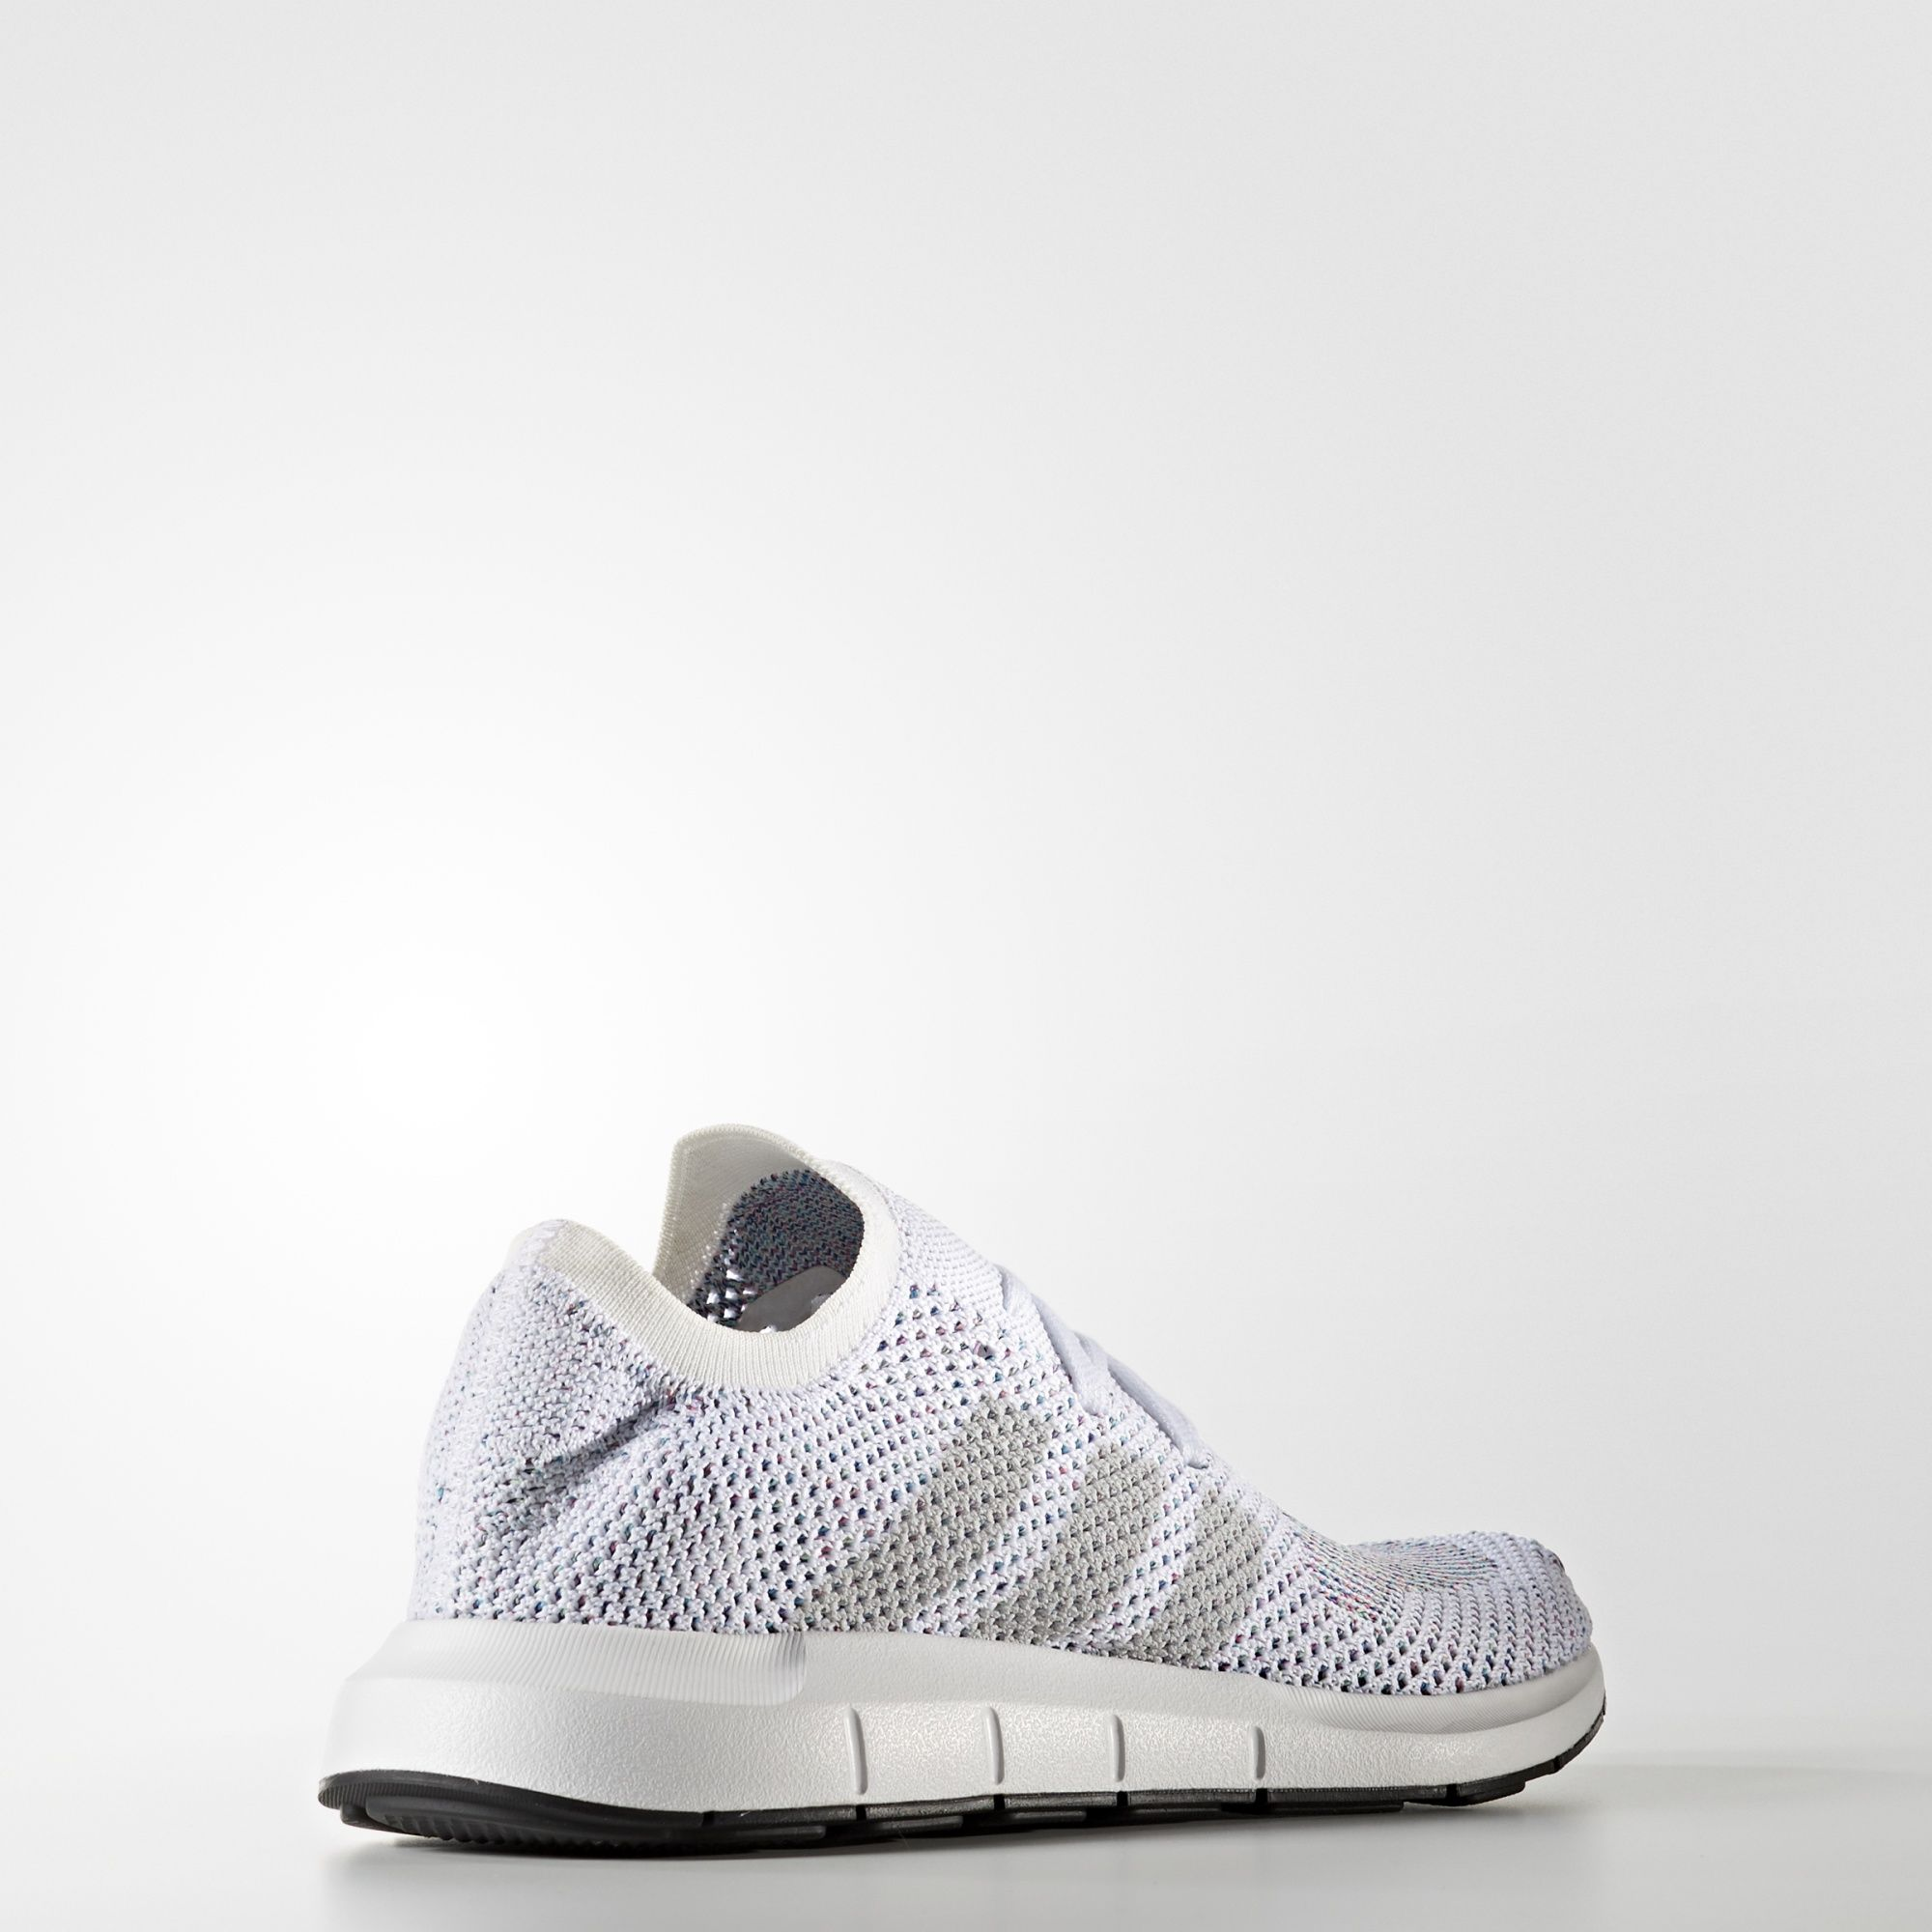 CG4126 adidas Swift Run Primeknit White 3